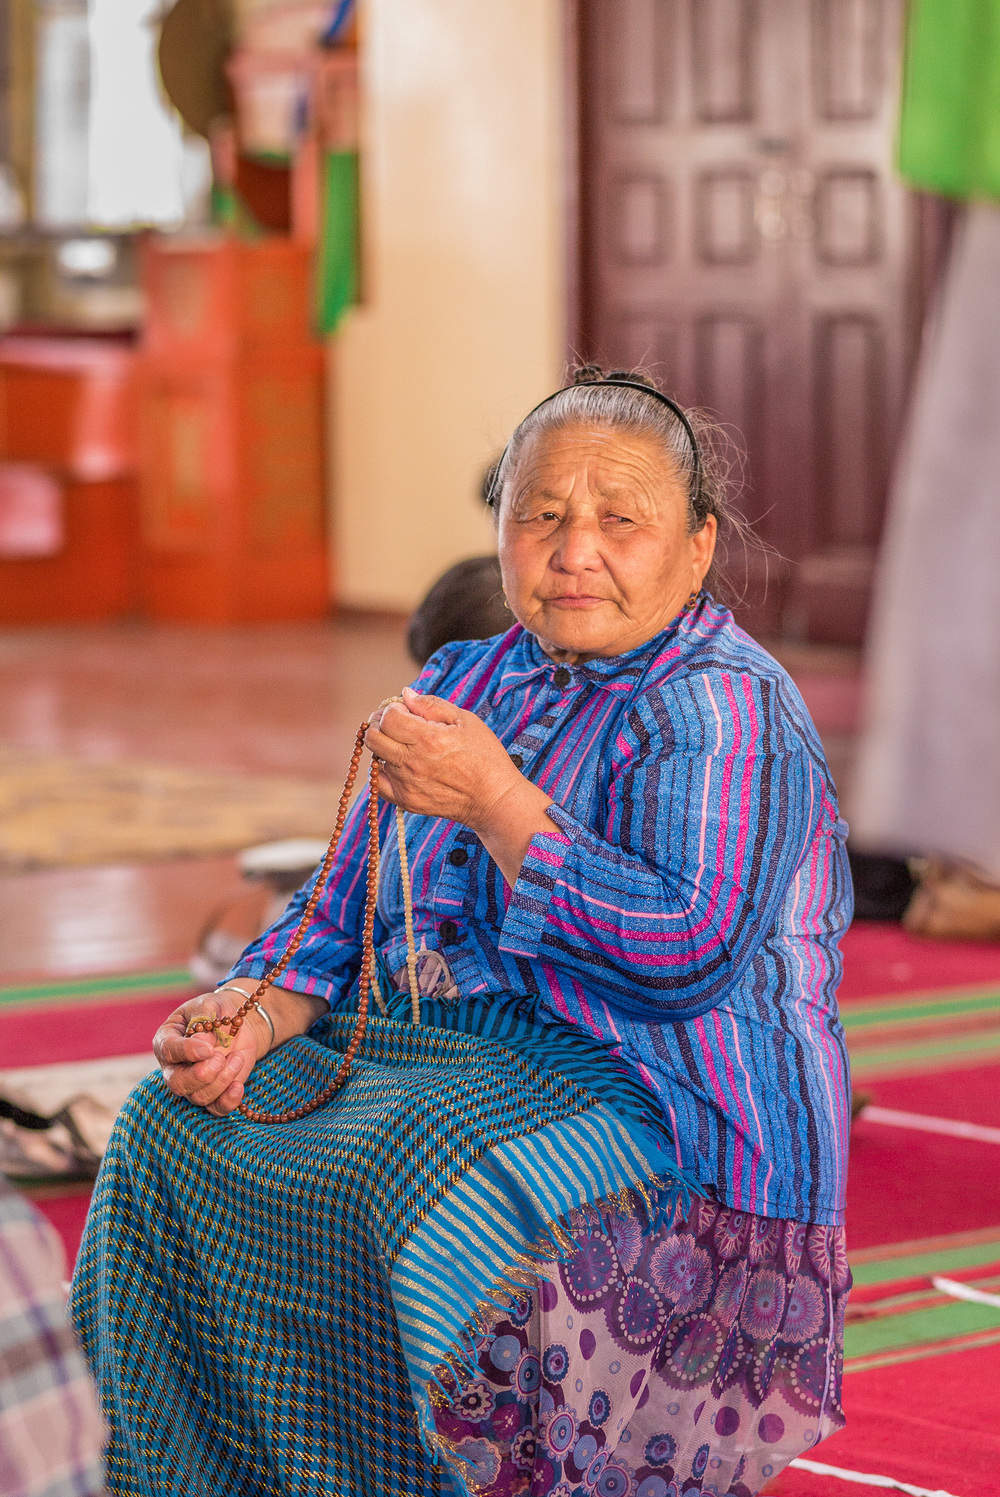 Mongolian supplicant chanting mantras and counting them on her mala